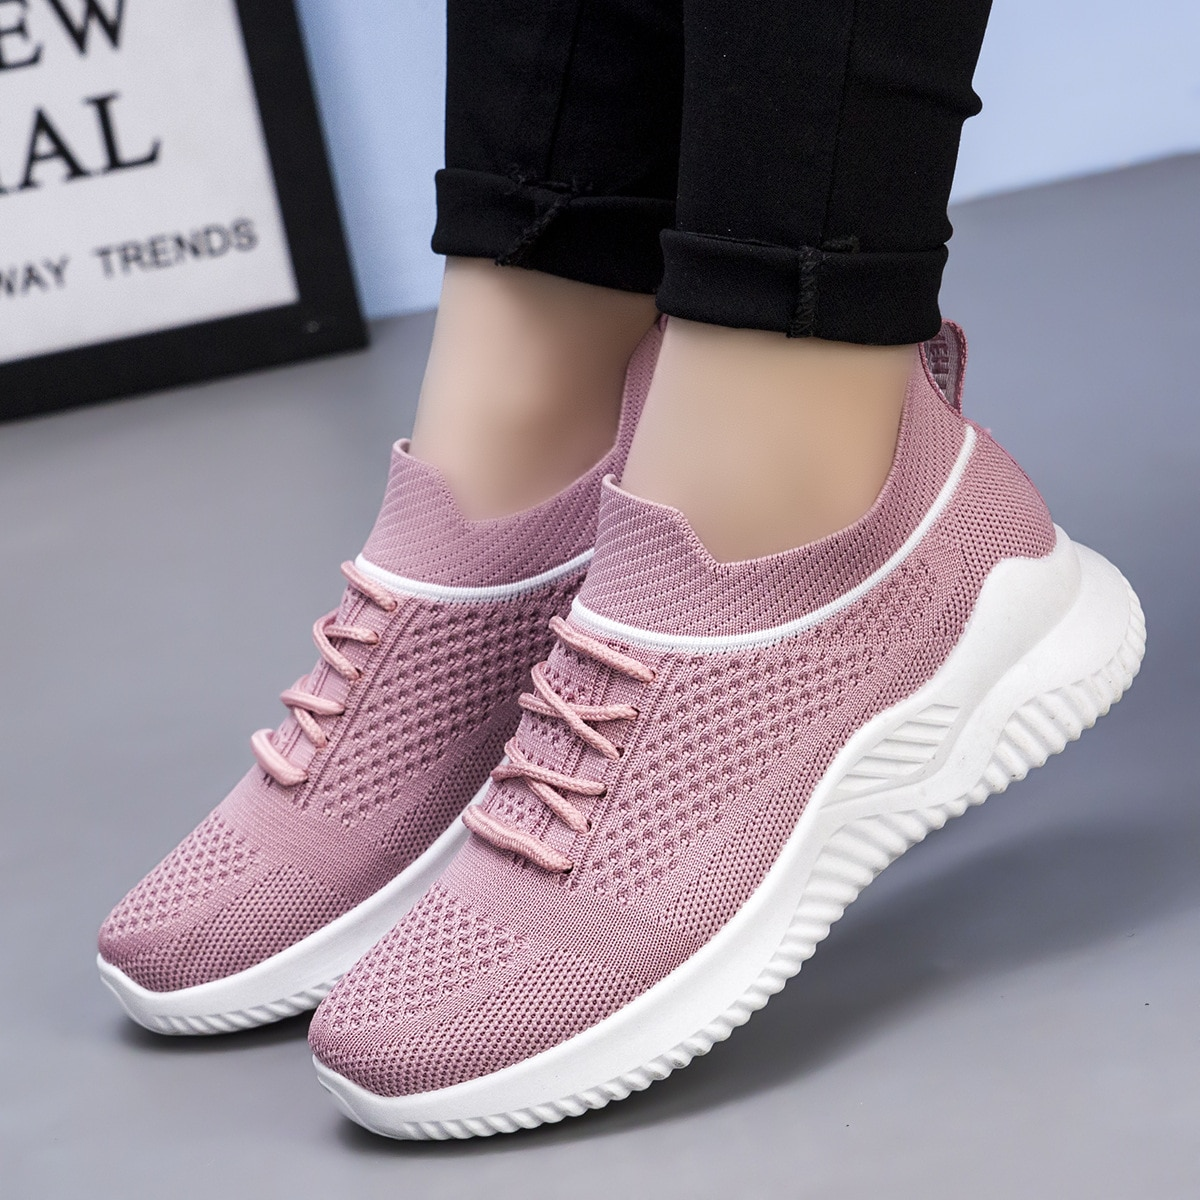 New Casual Sneakers Boys Slip on Sports Shoes Children Running Kids Trend Walking Outdoor Soft Botto